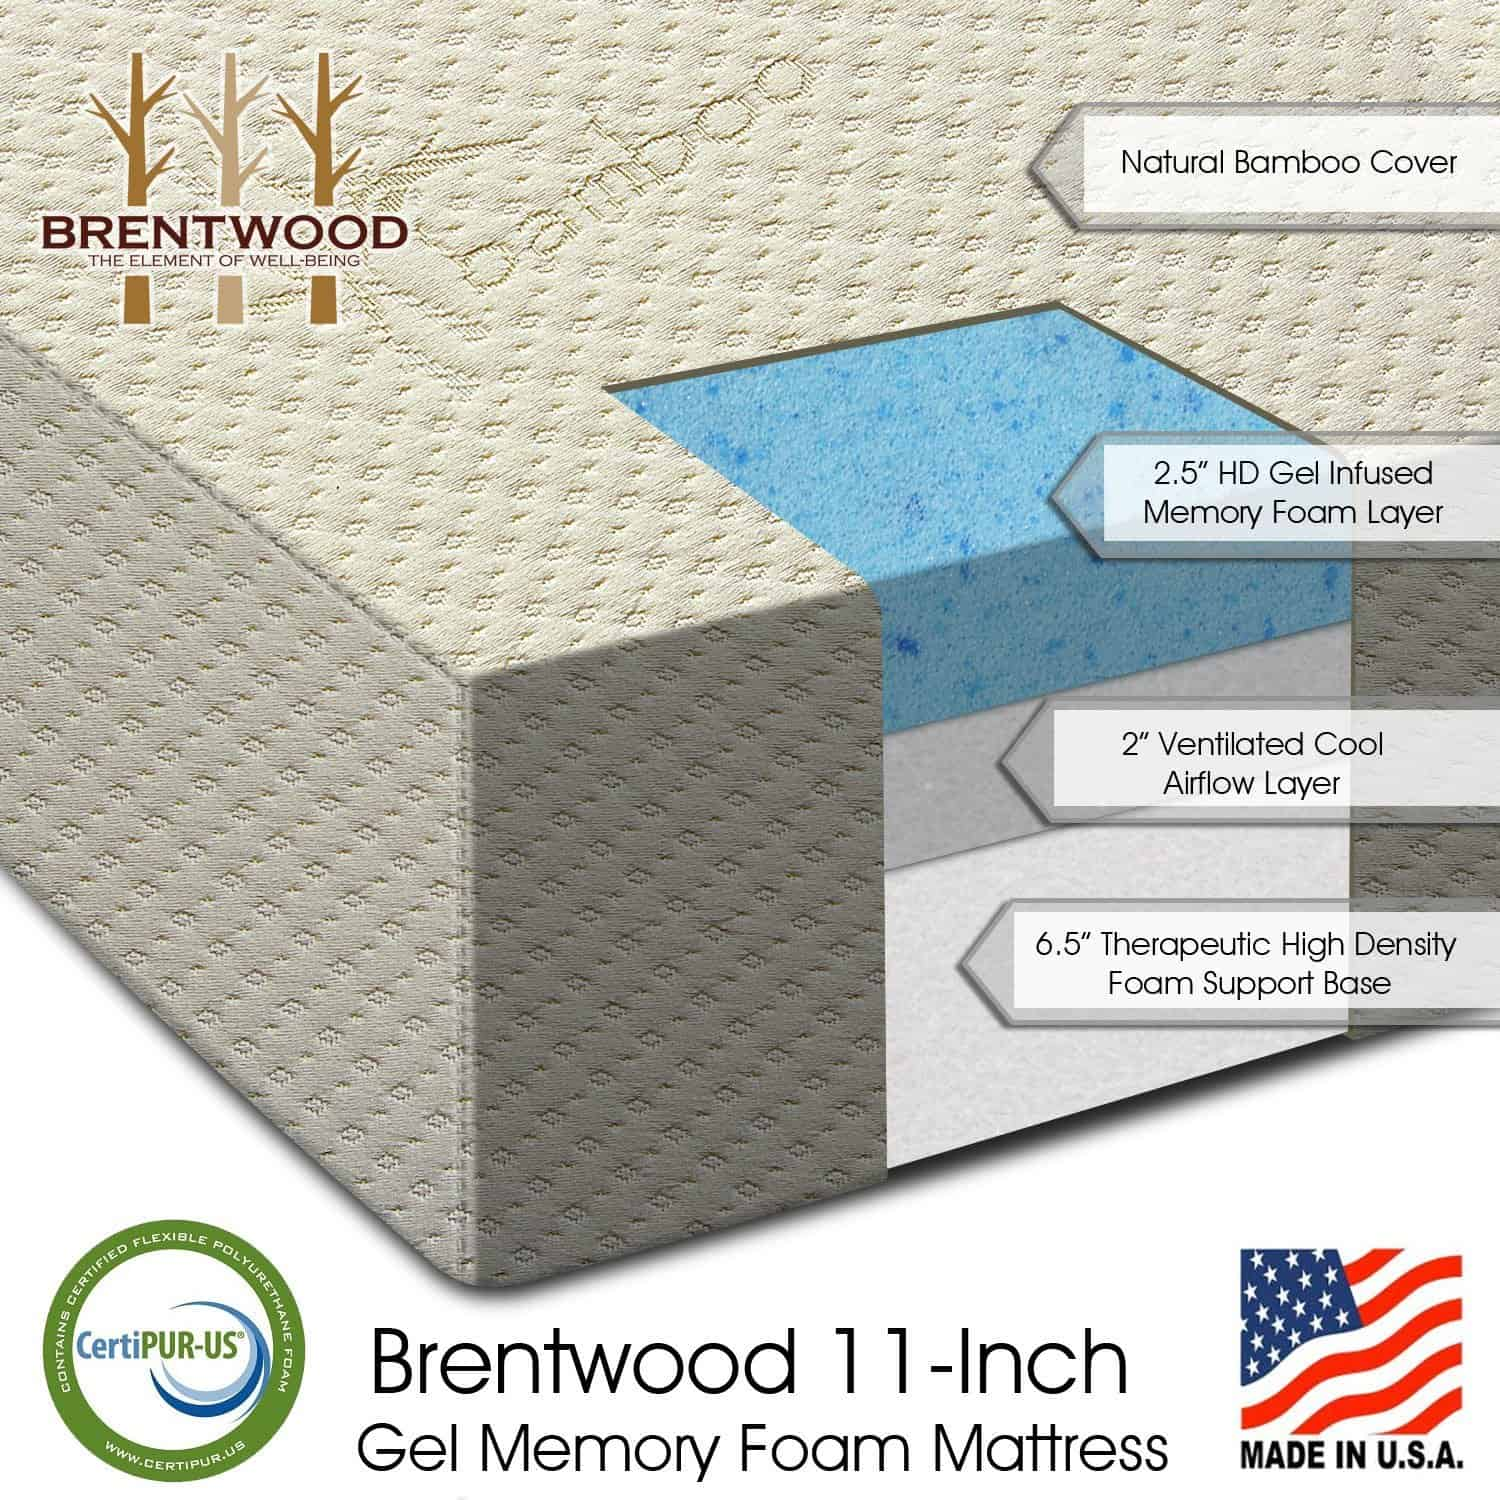 Brentwood 11 gel infused hd memory foam mattress review the number one mattress Where to buy mattress foam